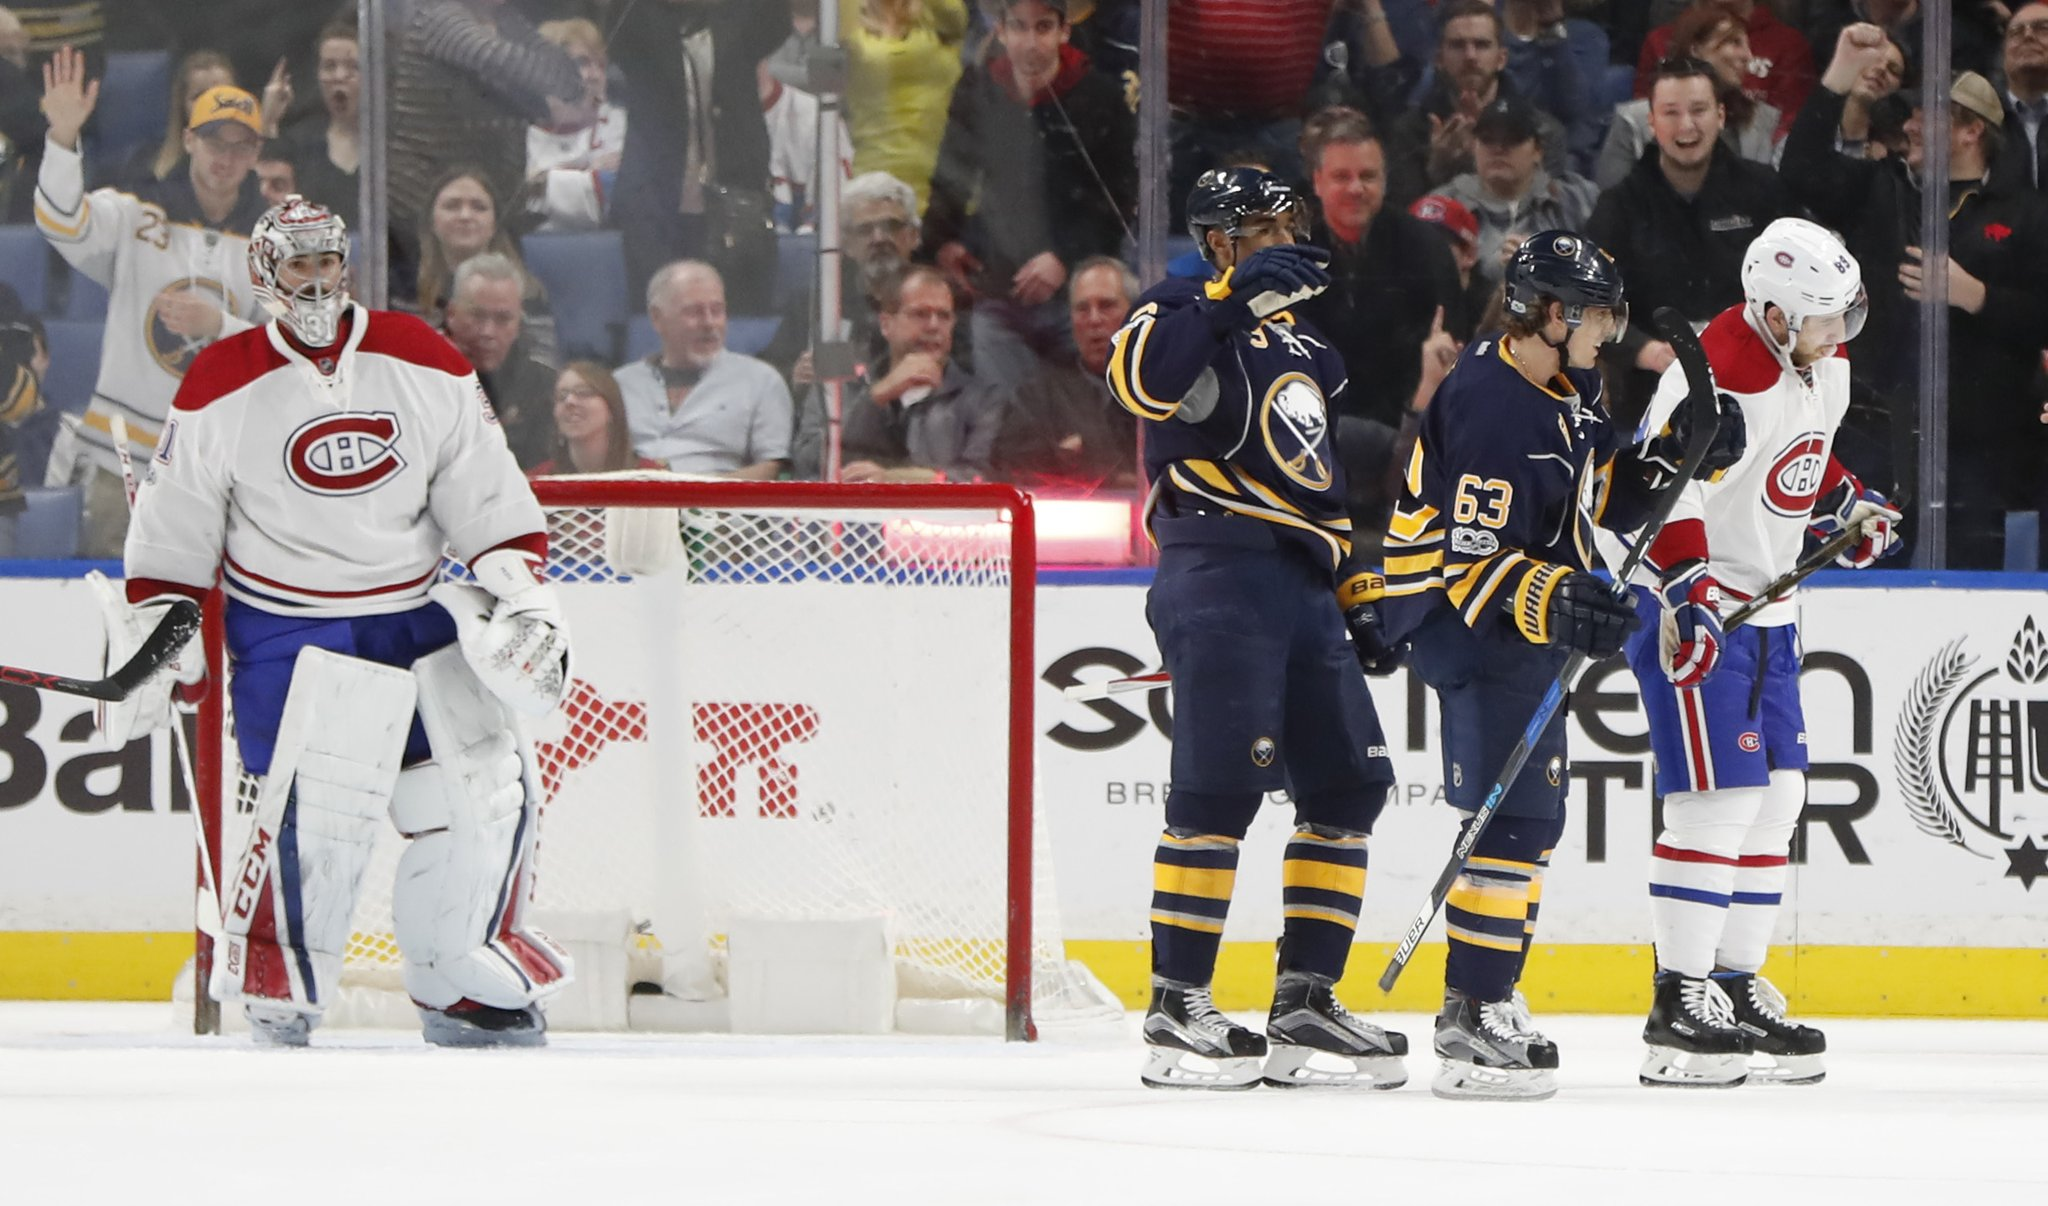 Sabres right wing Tyler Ennis (63) celebrates his second-period goal. (Harry Scull Jr./Buffalo News)